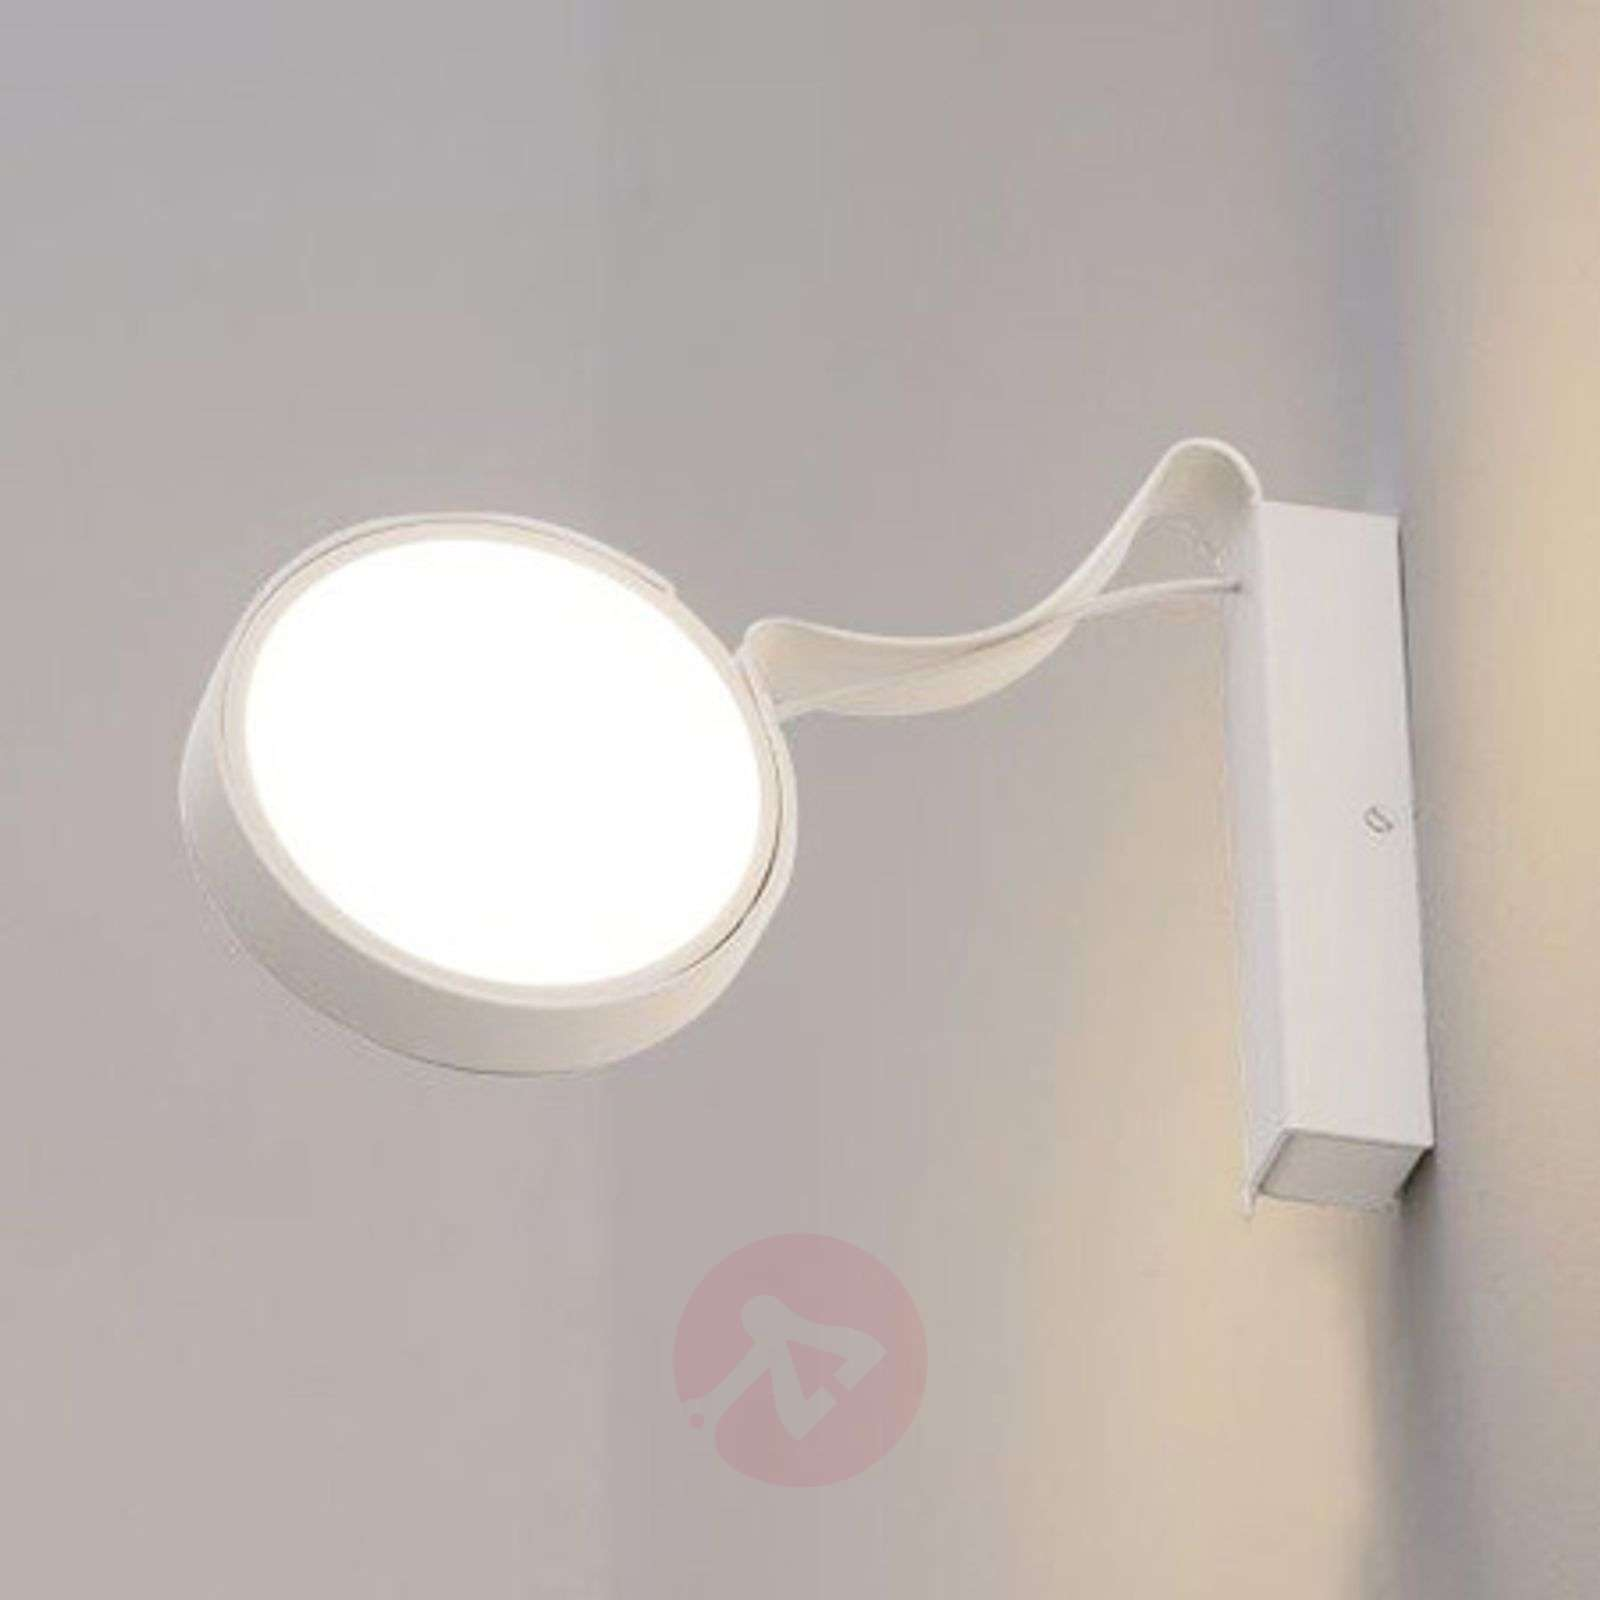 Led wandlamp DND Profile in wit-5538024-01